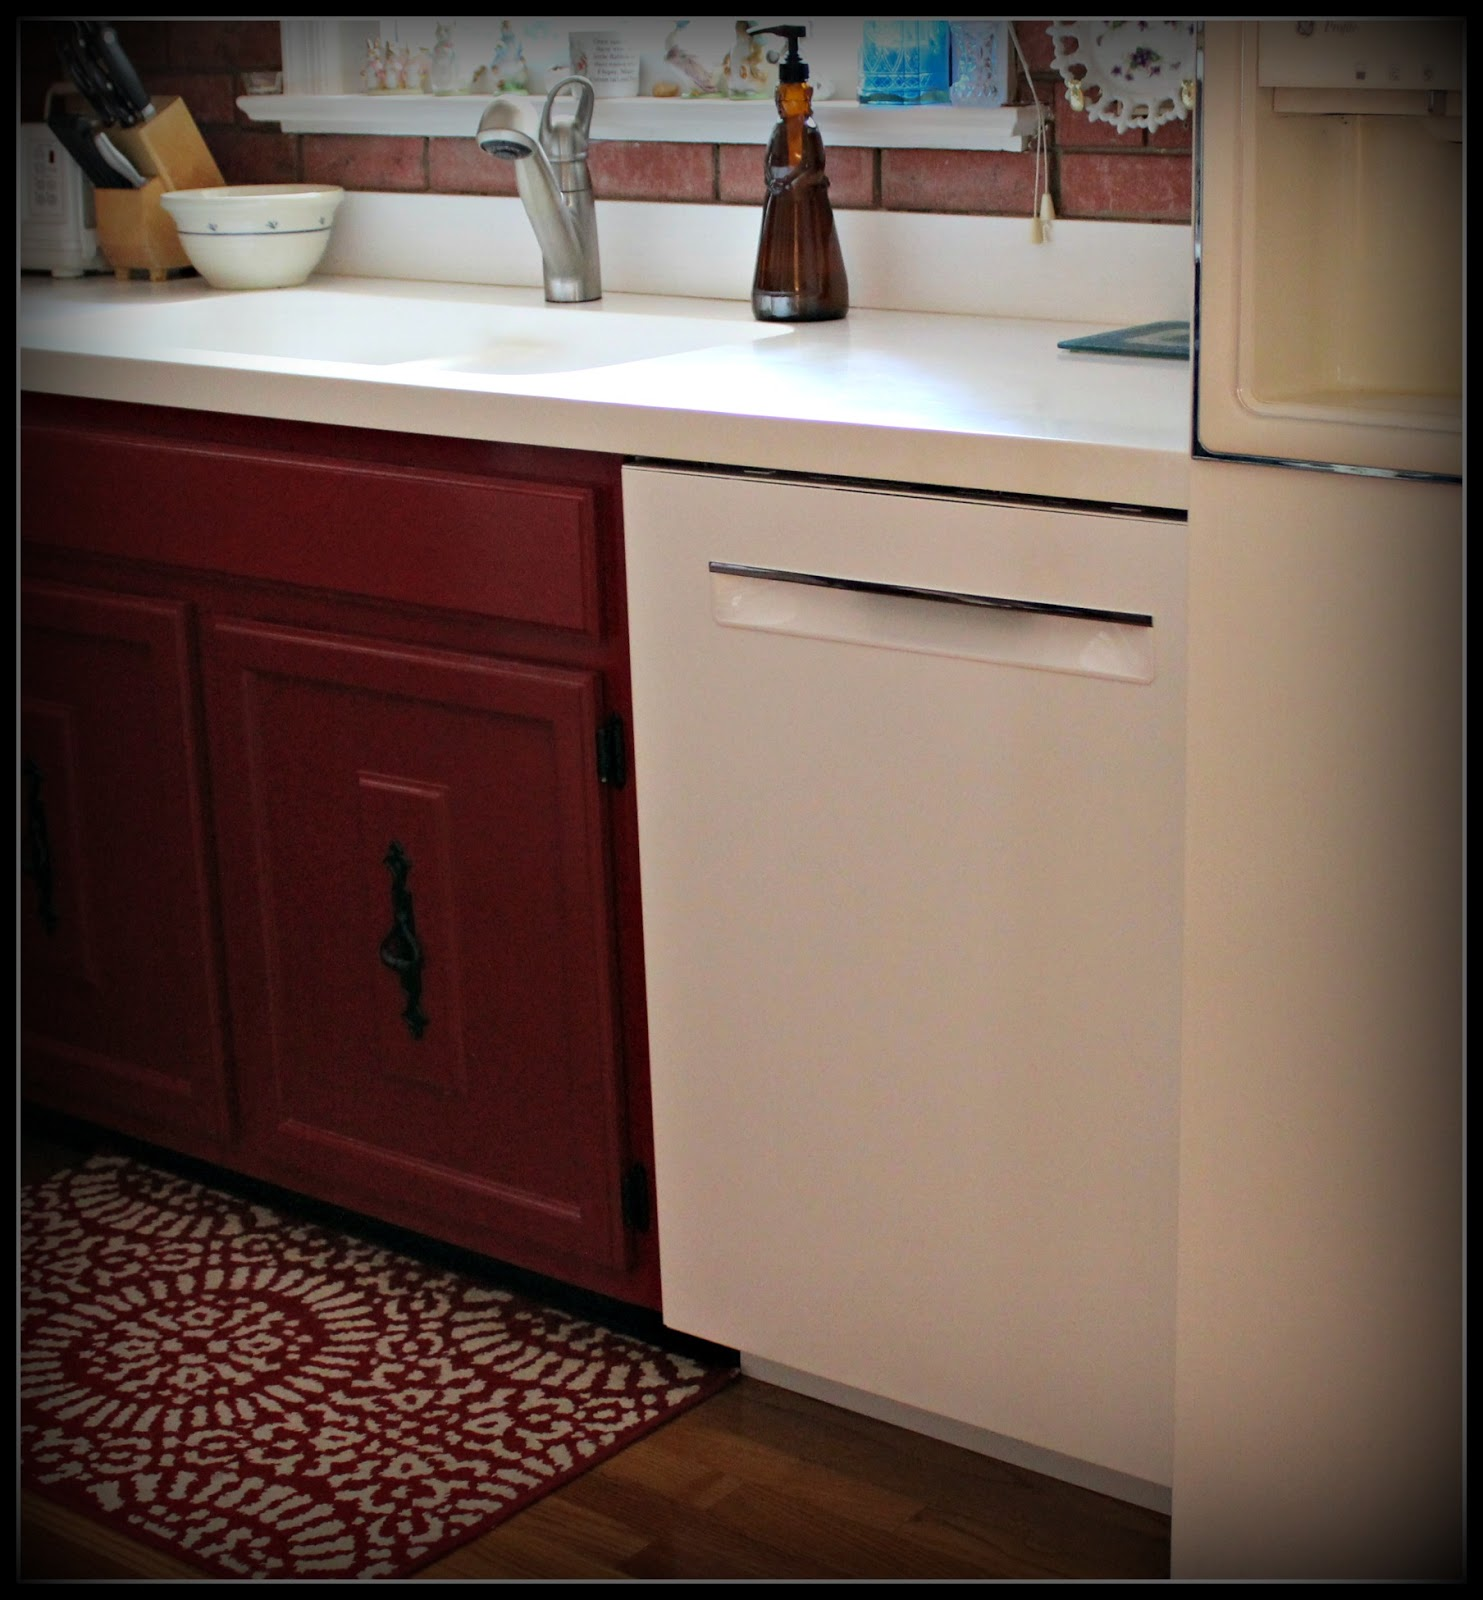 Hardwood Floors Replace Kitchen Do Under Dishwasher